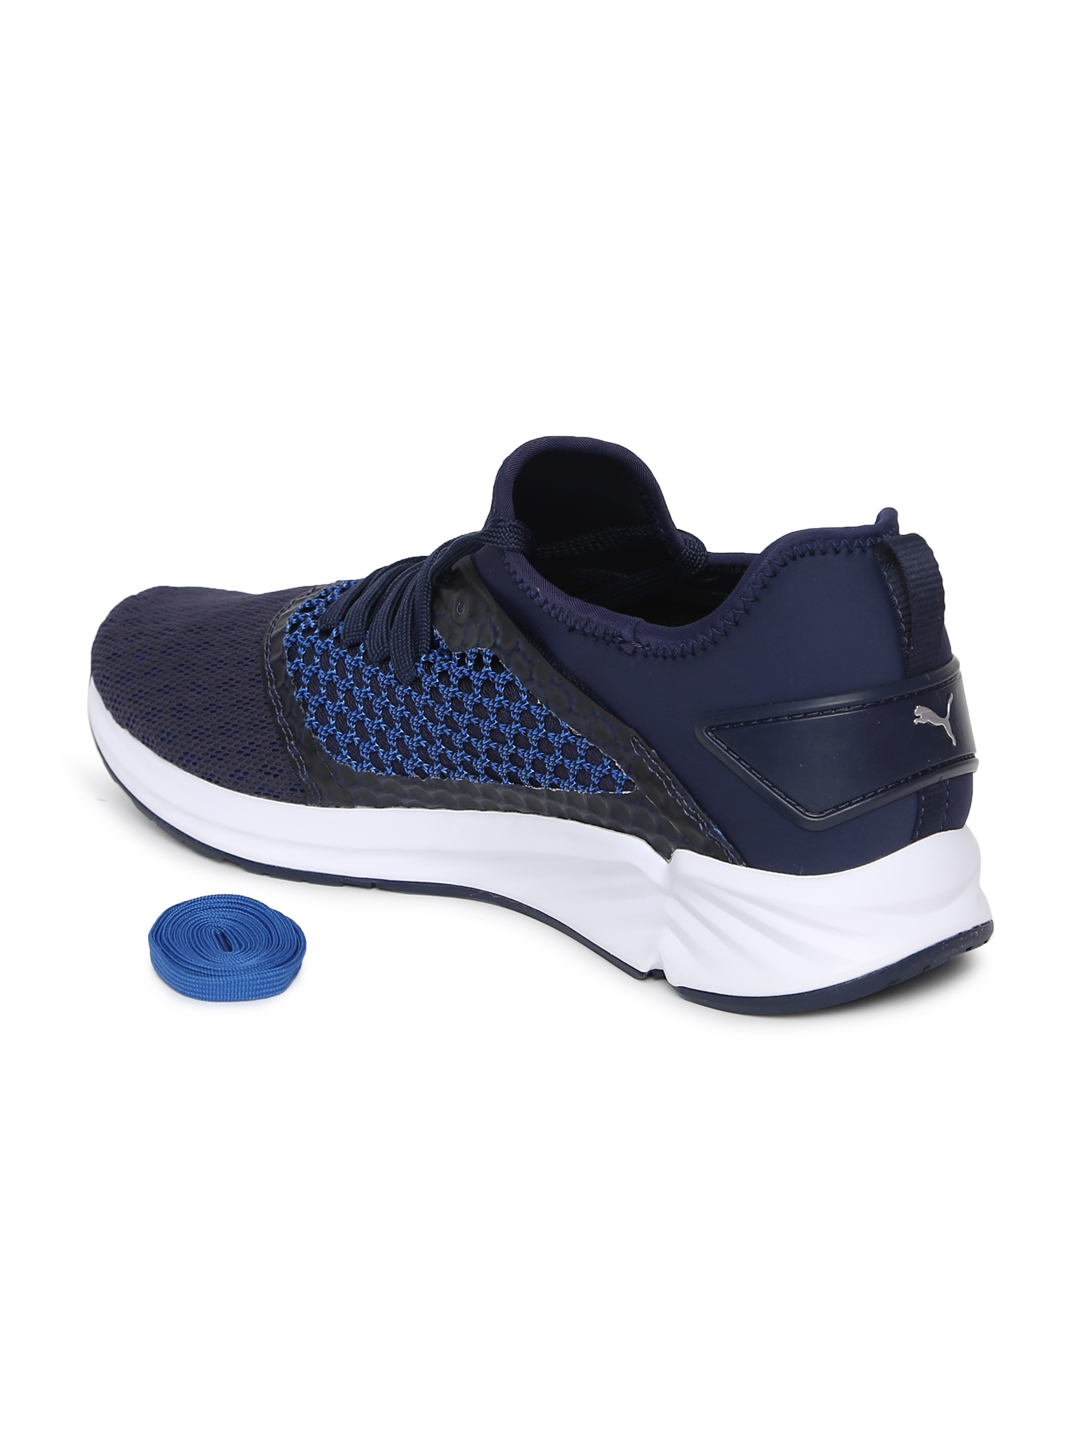 Buy Puma Men Navy Blue IGNITE 4 NETFIT Running Shoes - Sports Shoes ... cca7719c8